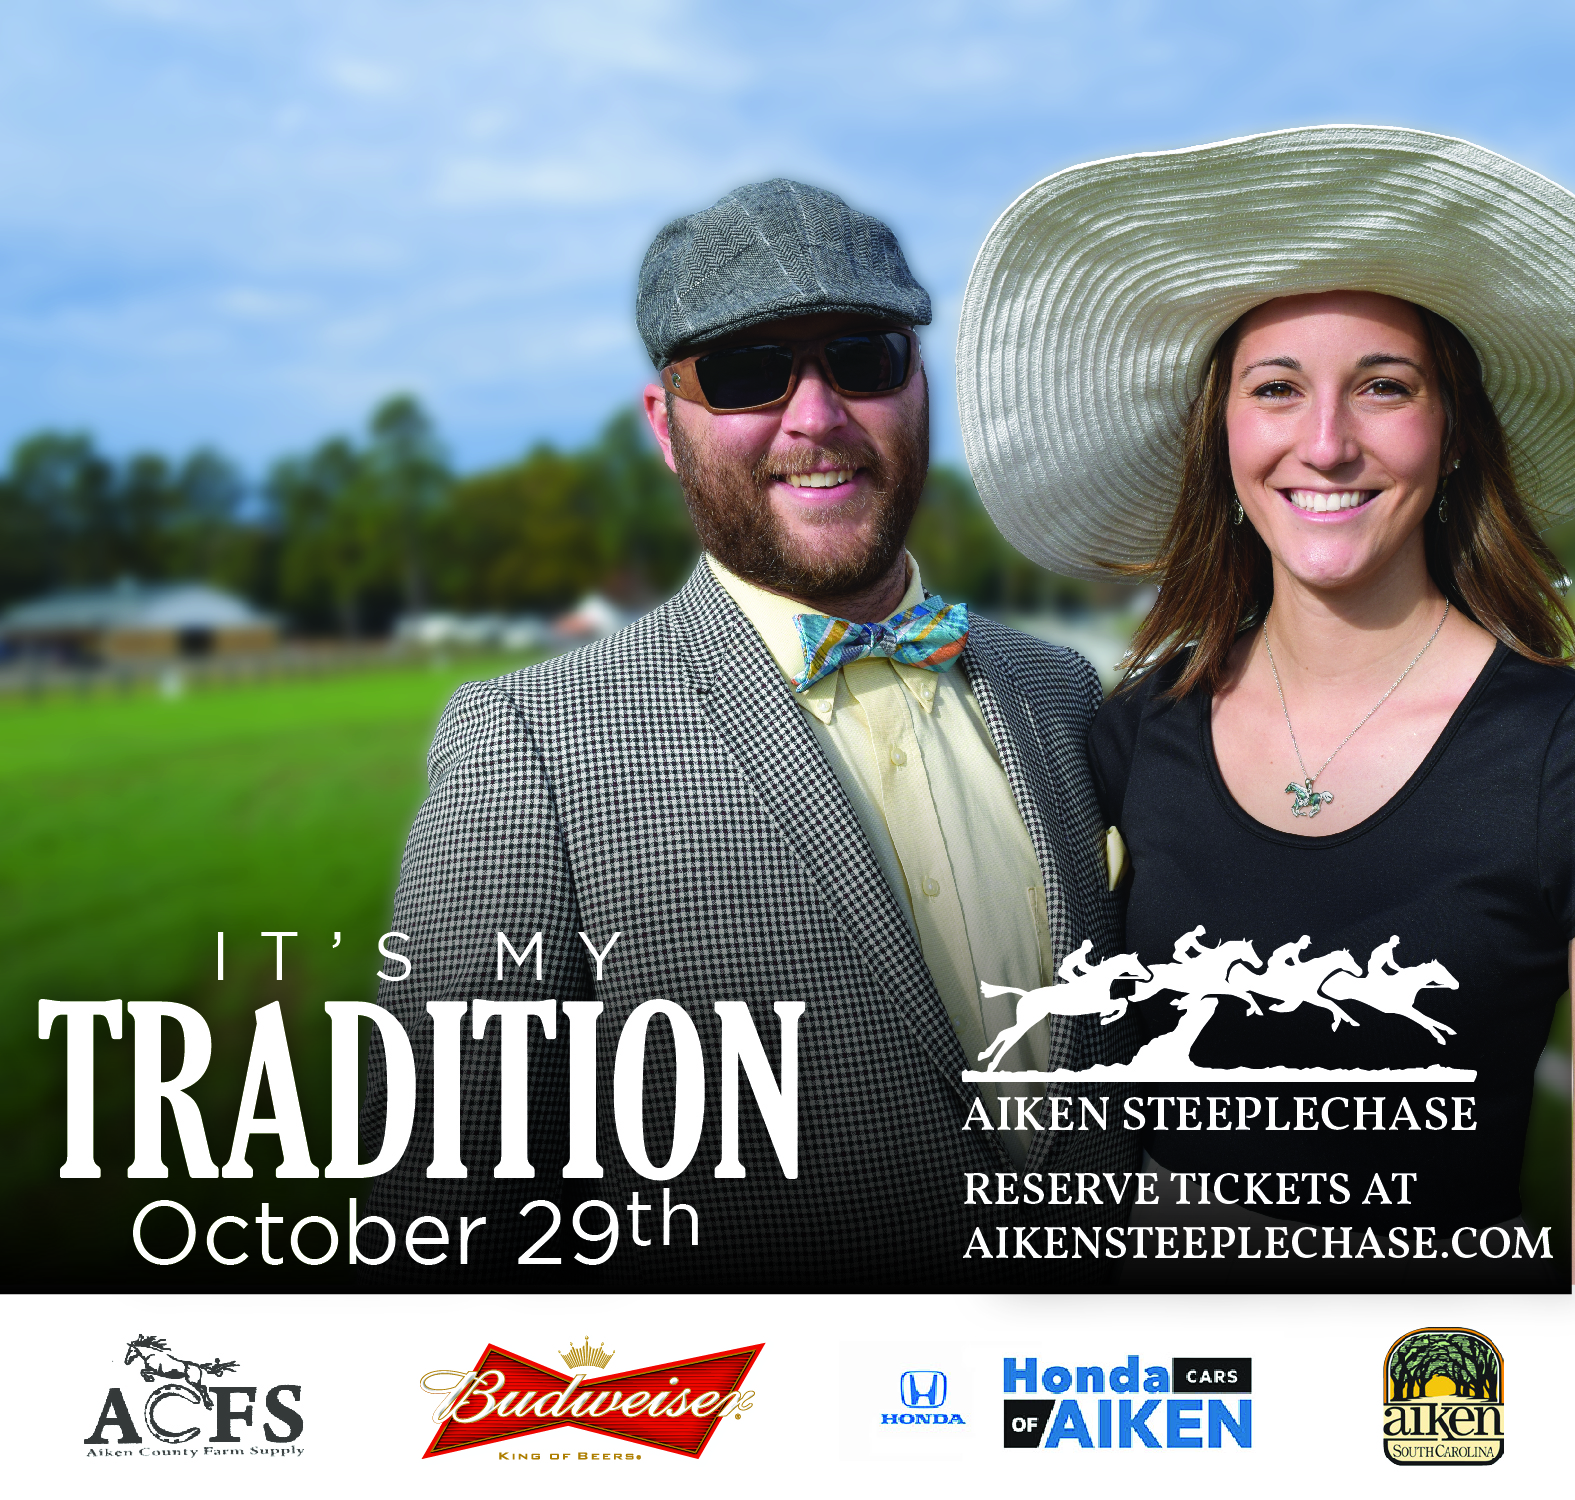 Aiken Steeplechase Ads